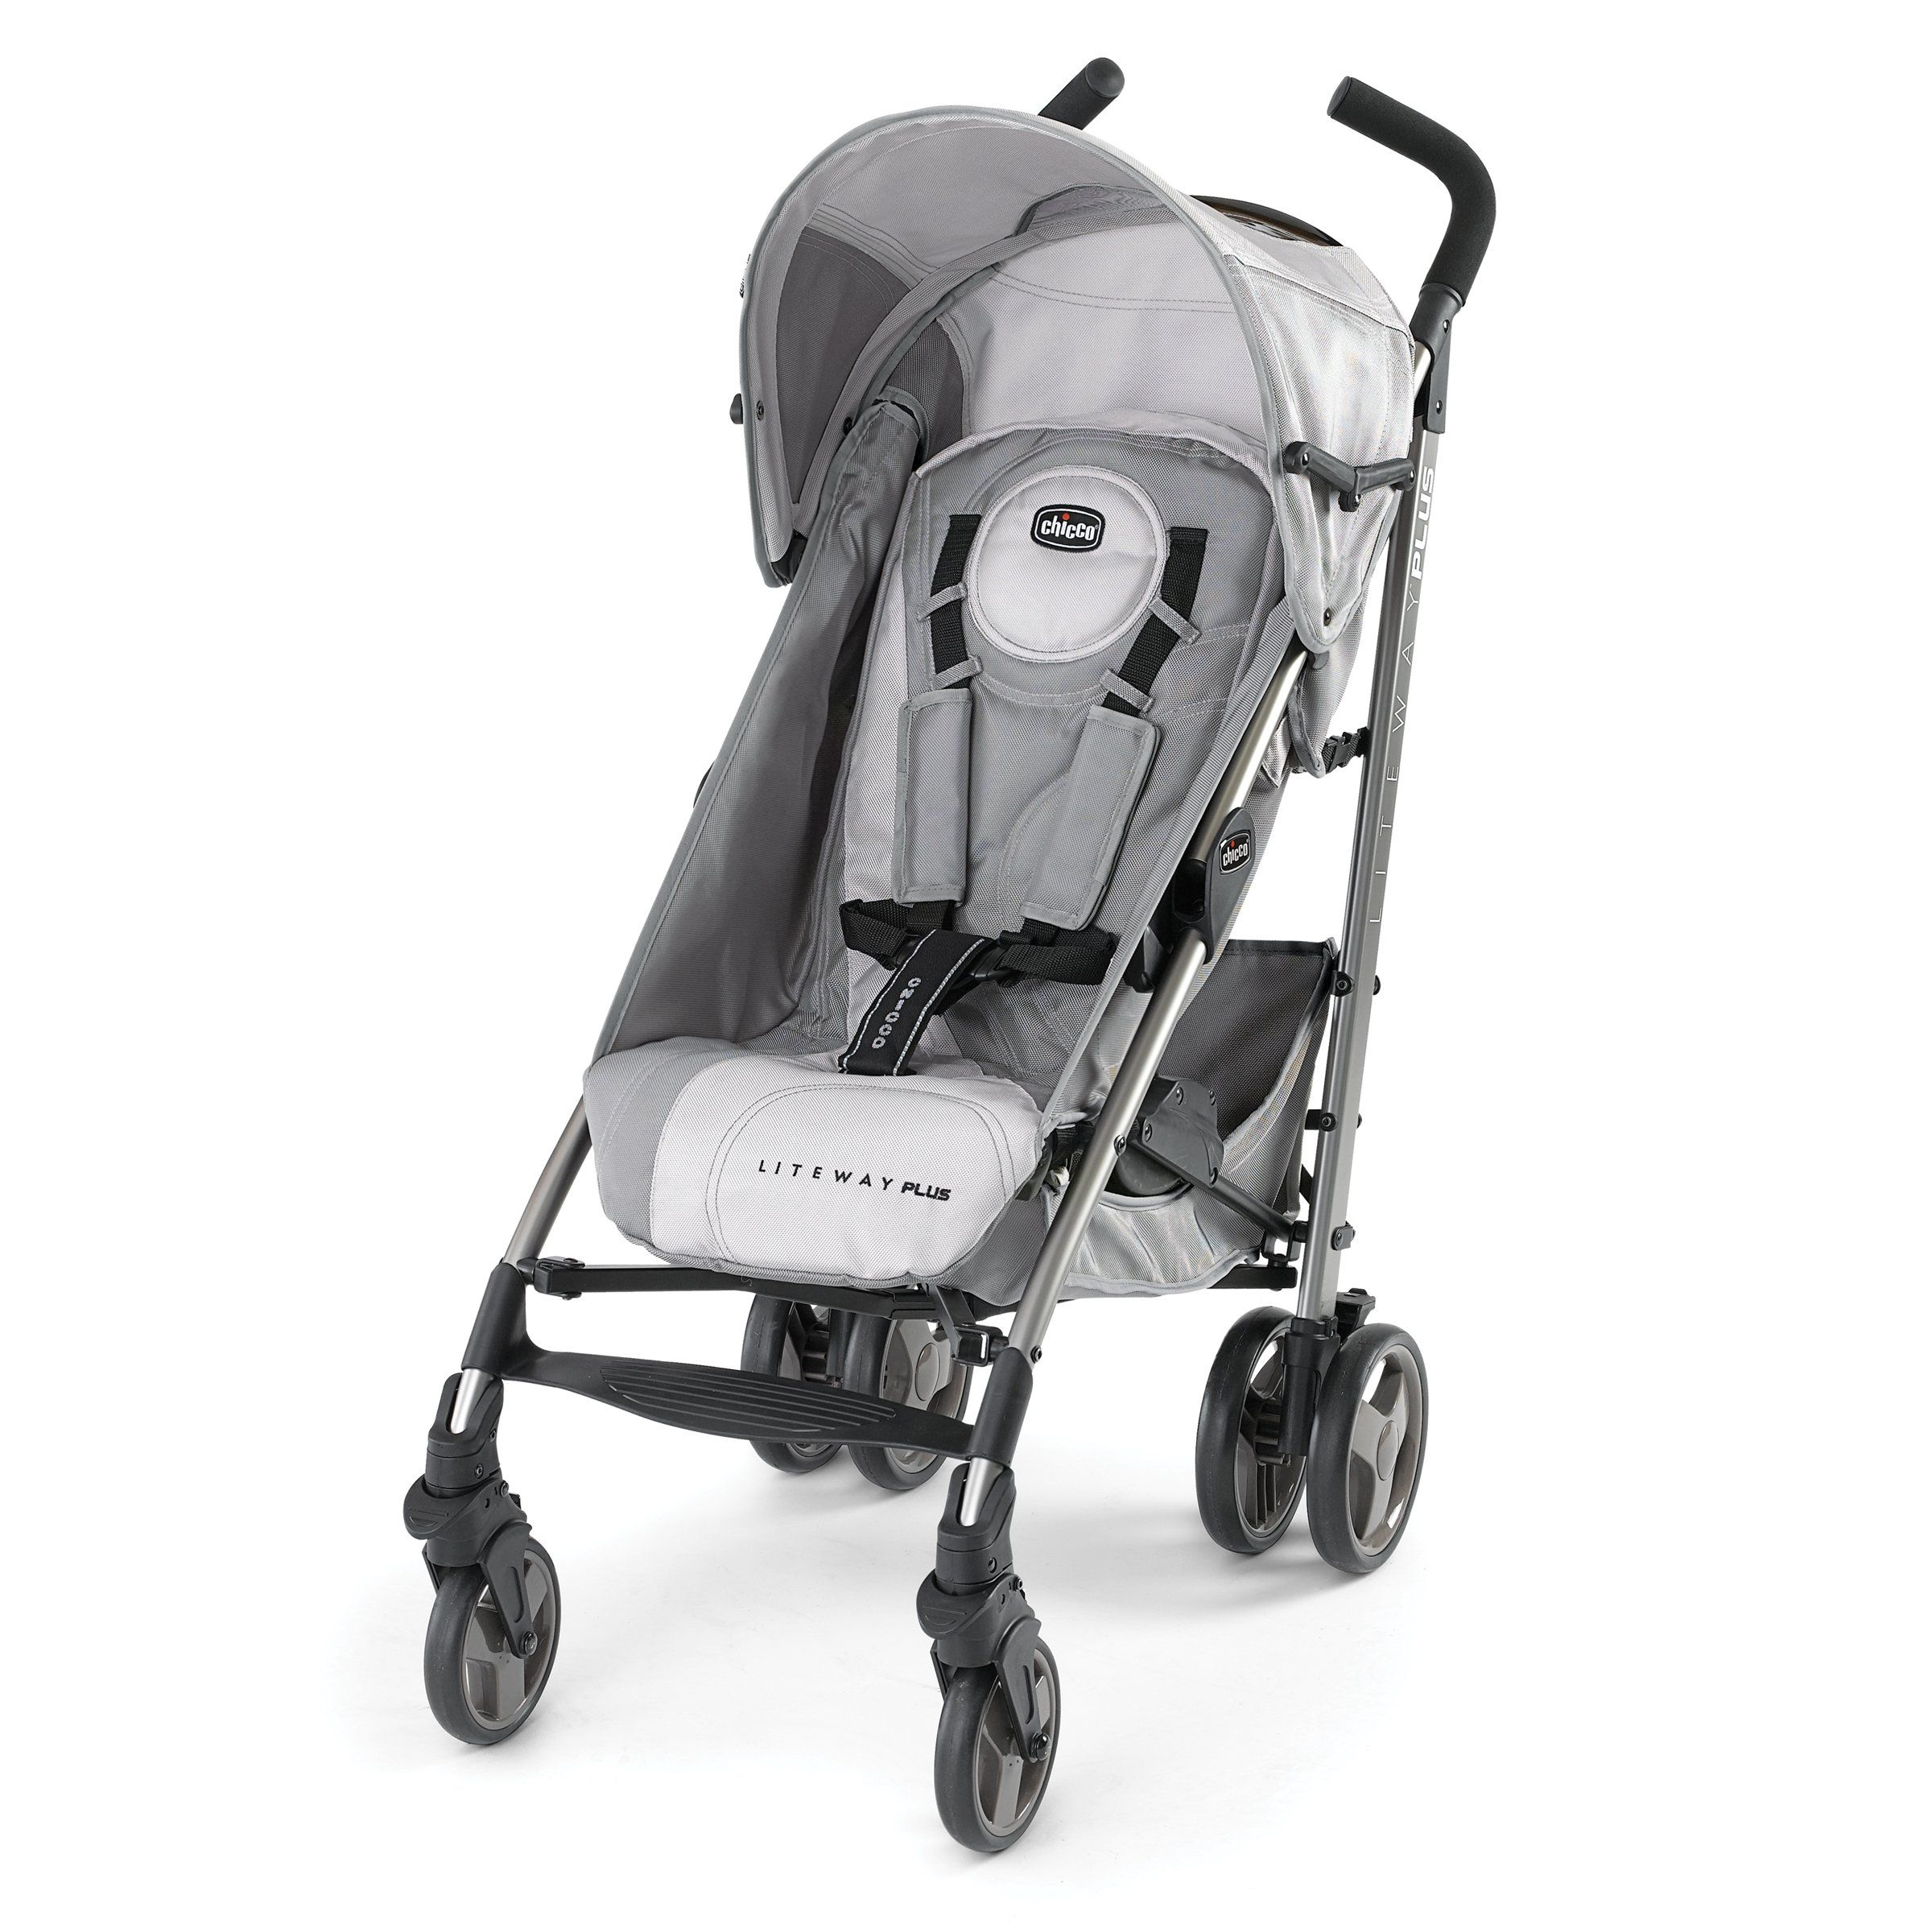 Chicco Liteway Plus Stroller, Silver. Compatible with